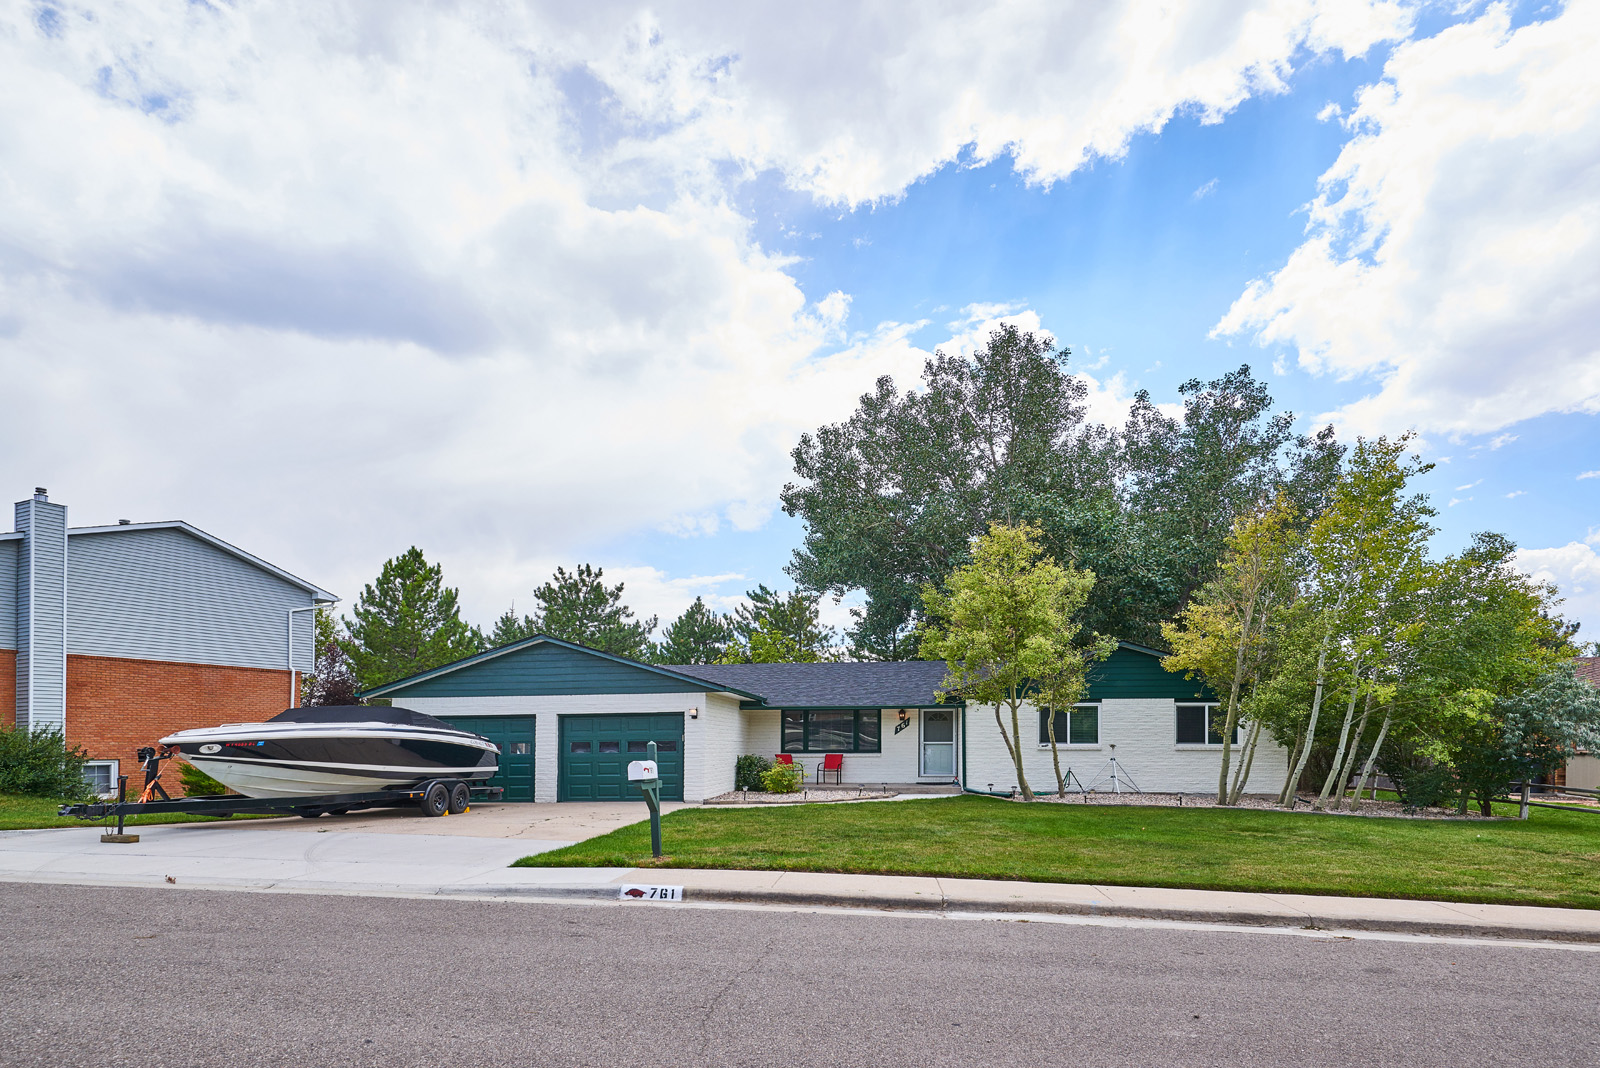 Single Family Home for Sale at 761 Dogwood Ave Cheyenne, Wyoming United States